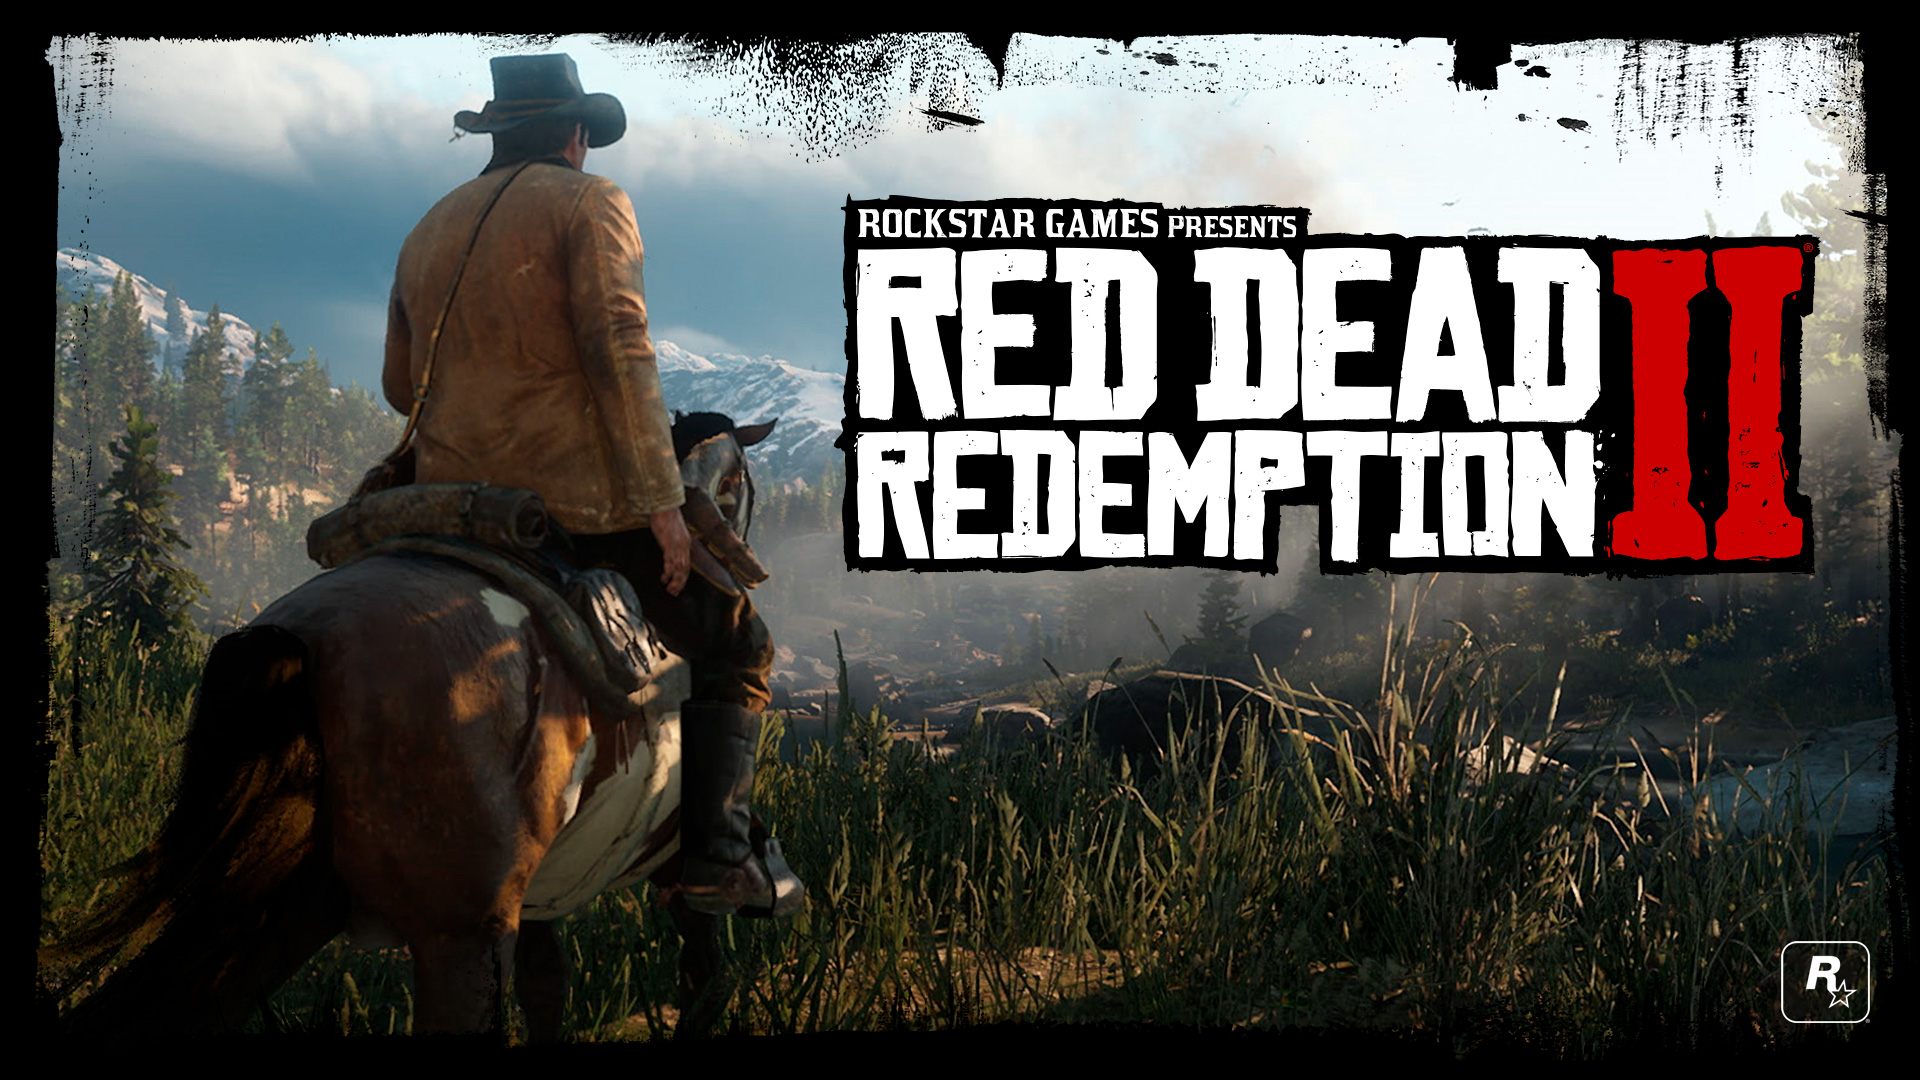 Red dead redemption 2 xbox red dead redemption 2 publicscrutiny Images